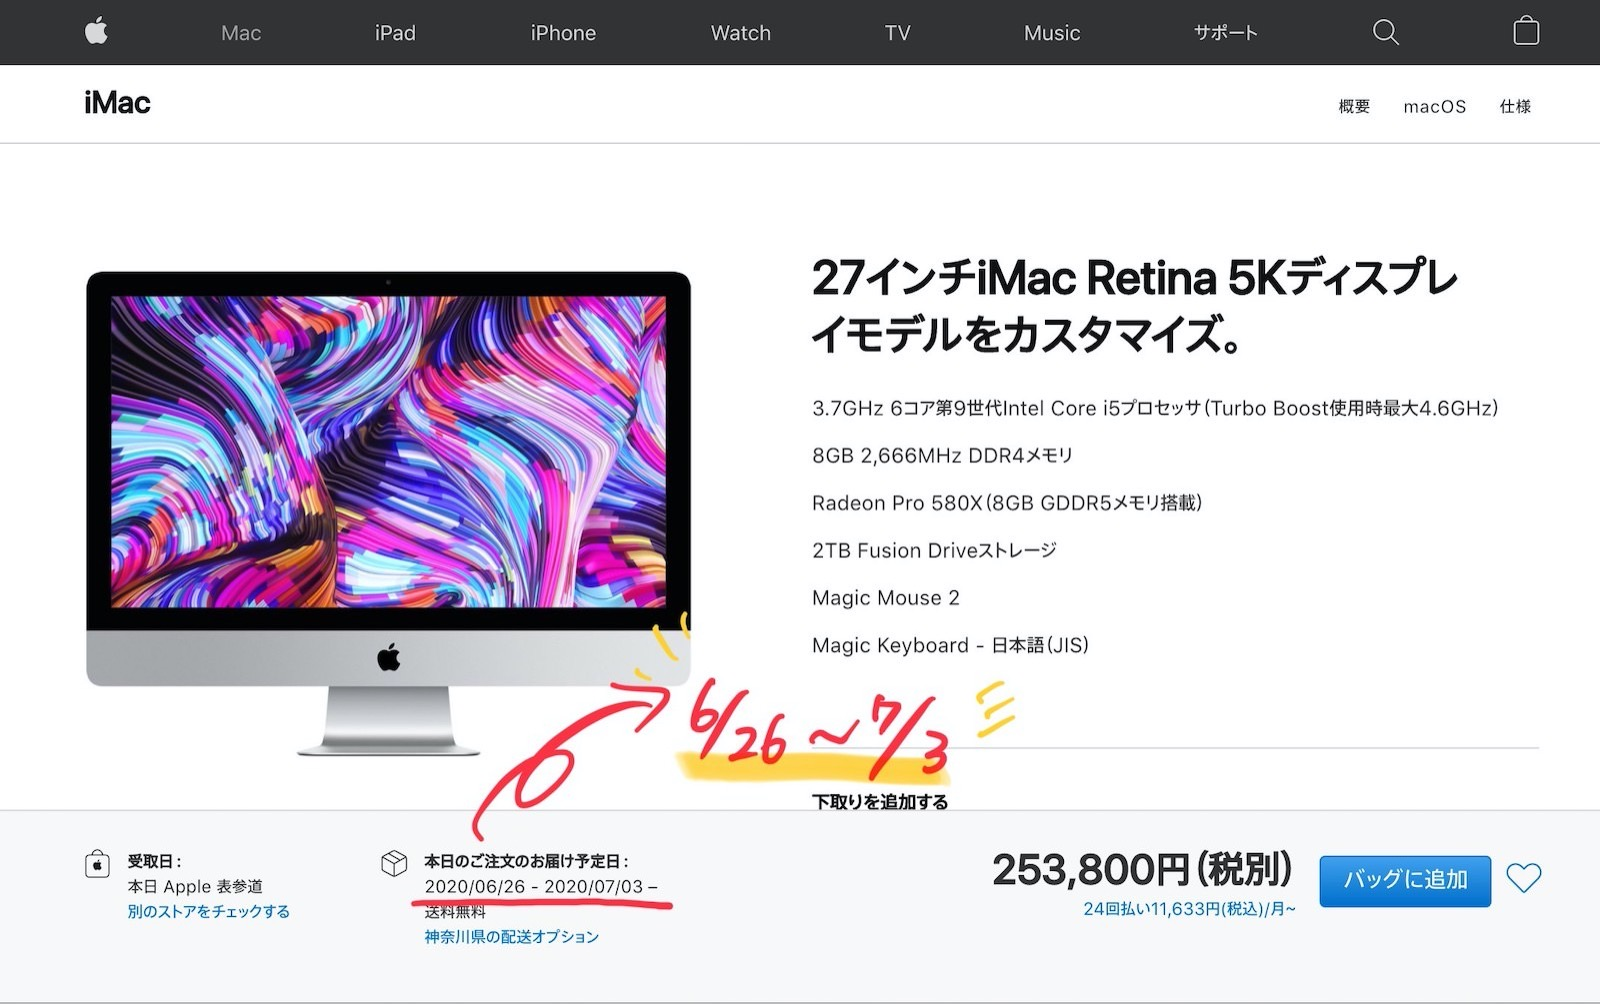 Imac update coming soon a possibility